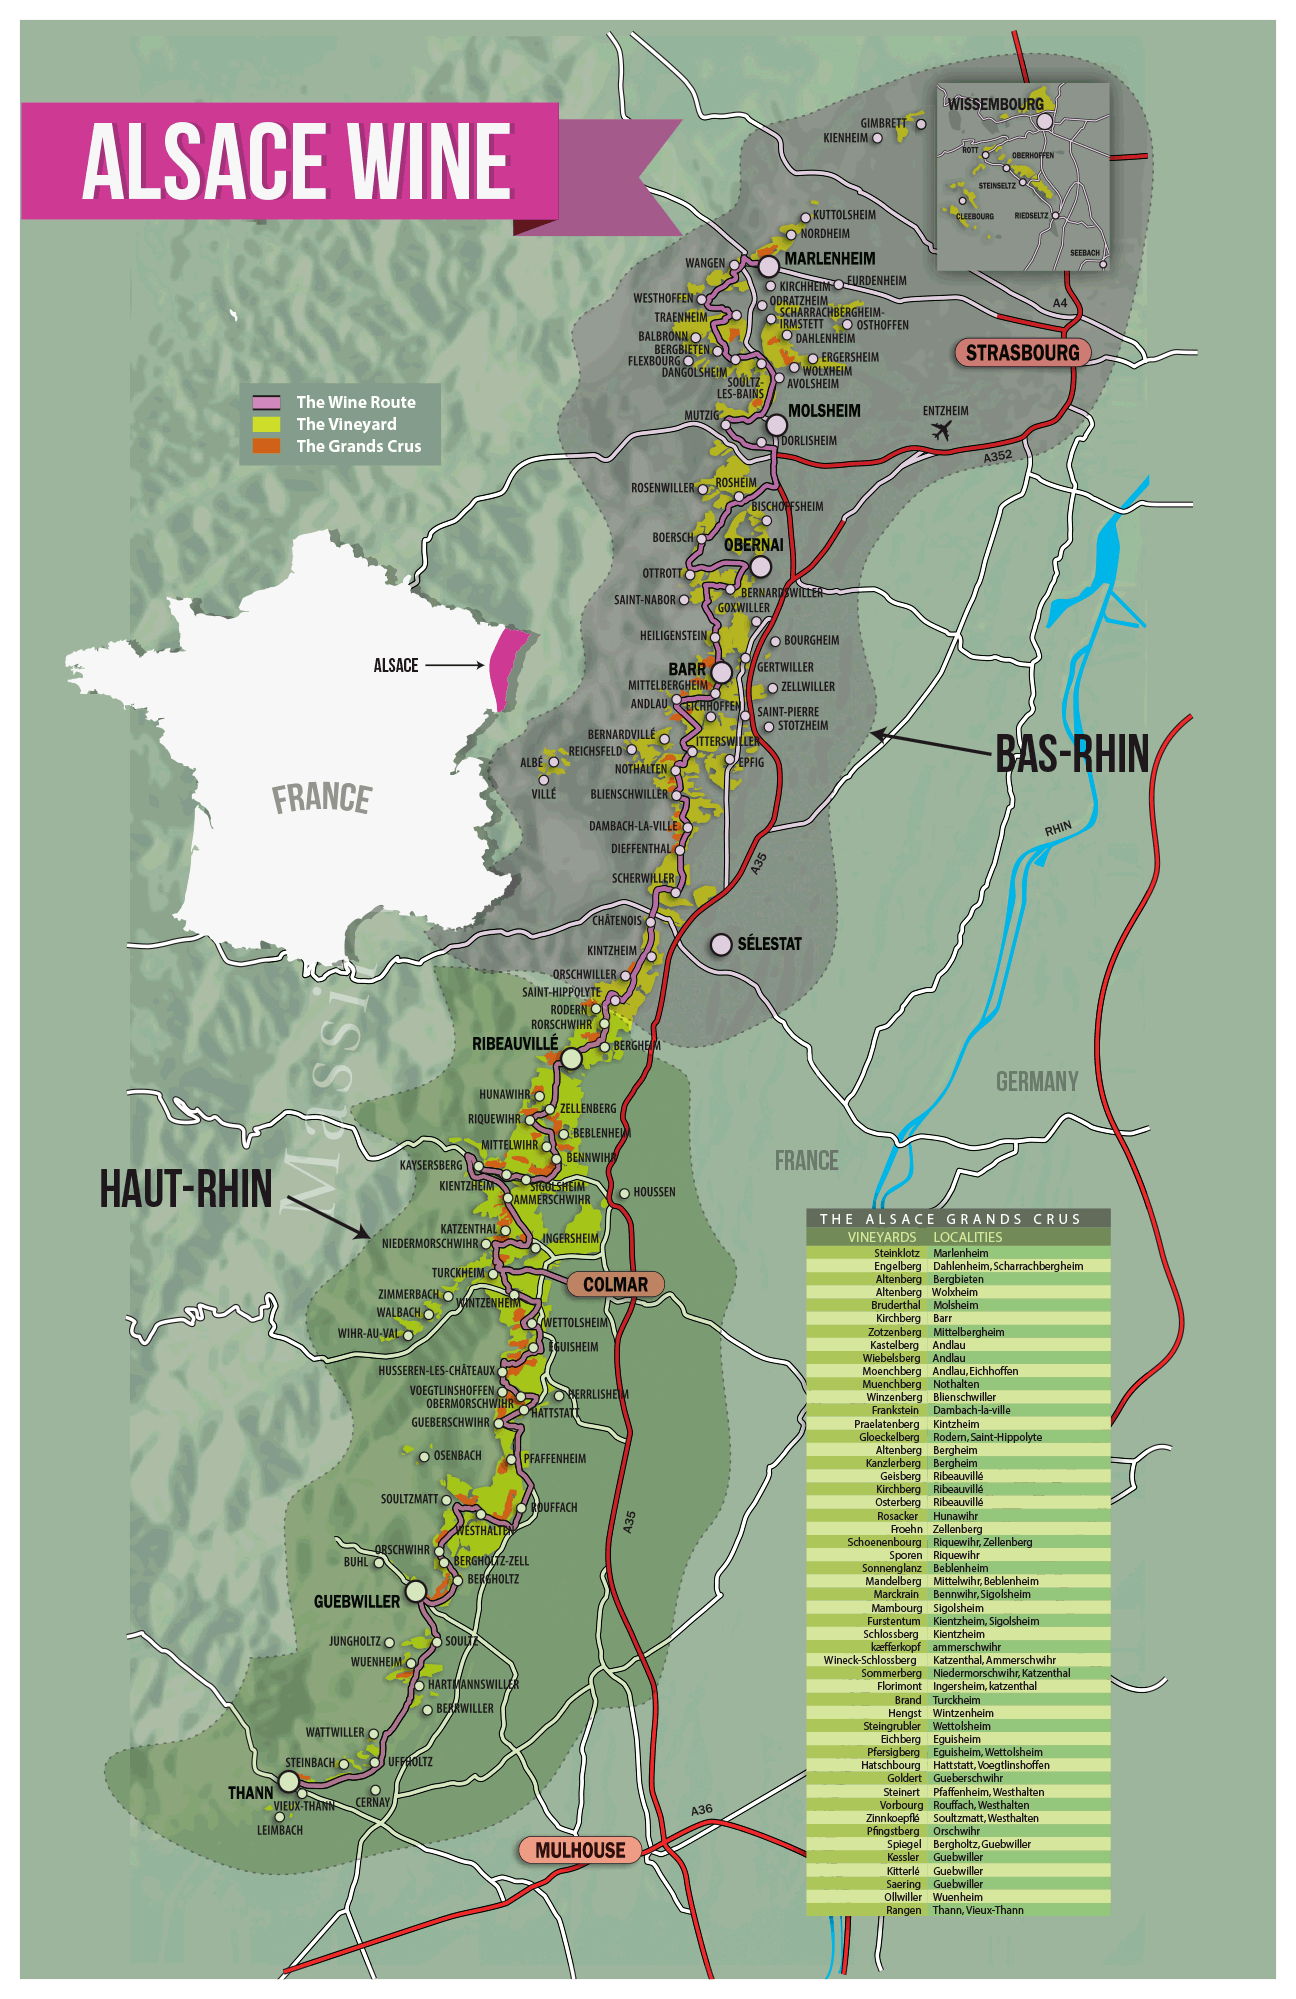 Alsace Wine Region A Guide For Enthusiasts Alsace Wine And France - Germany vineyards map